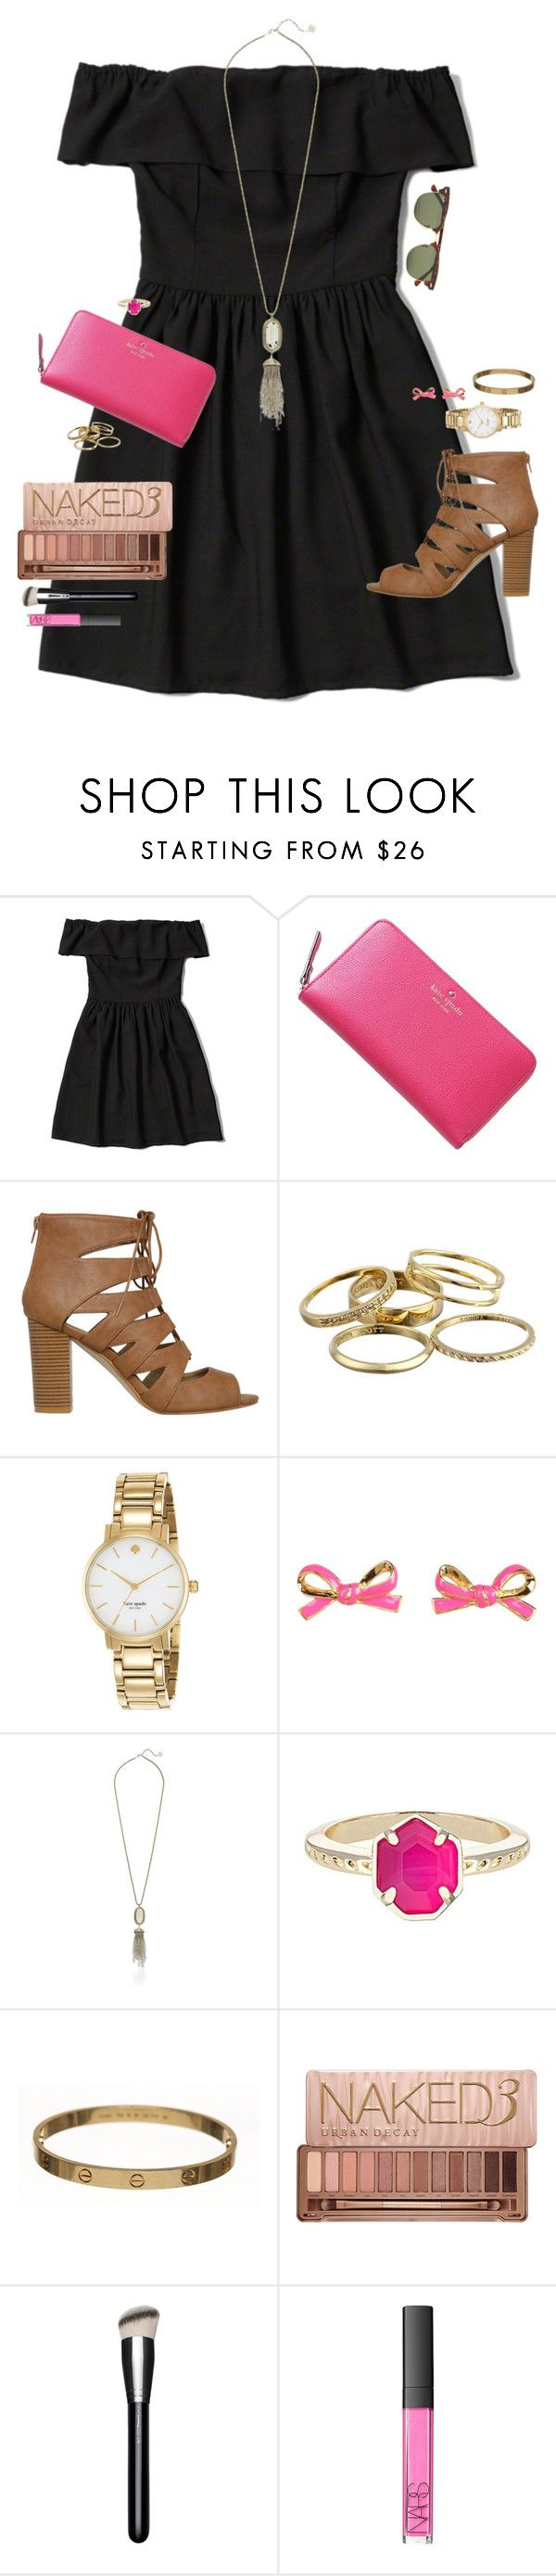 """Psalm 37:4"" by smbprep ❤ liked on Polyvore featuring Abercrombie & Fitch, Kate Spade, Kendra Scott, Cartier, Urban Decay, MAC Cosmetics, NARS Cosmetics and Ray-Ban"